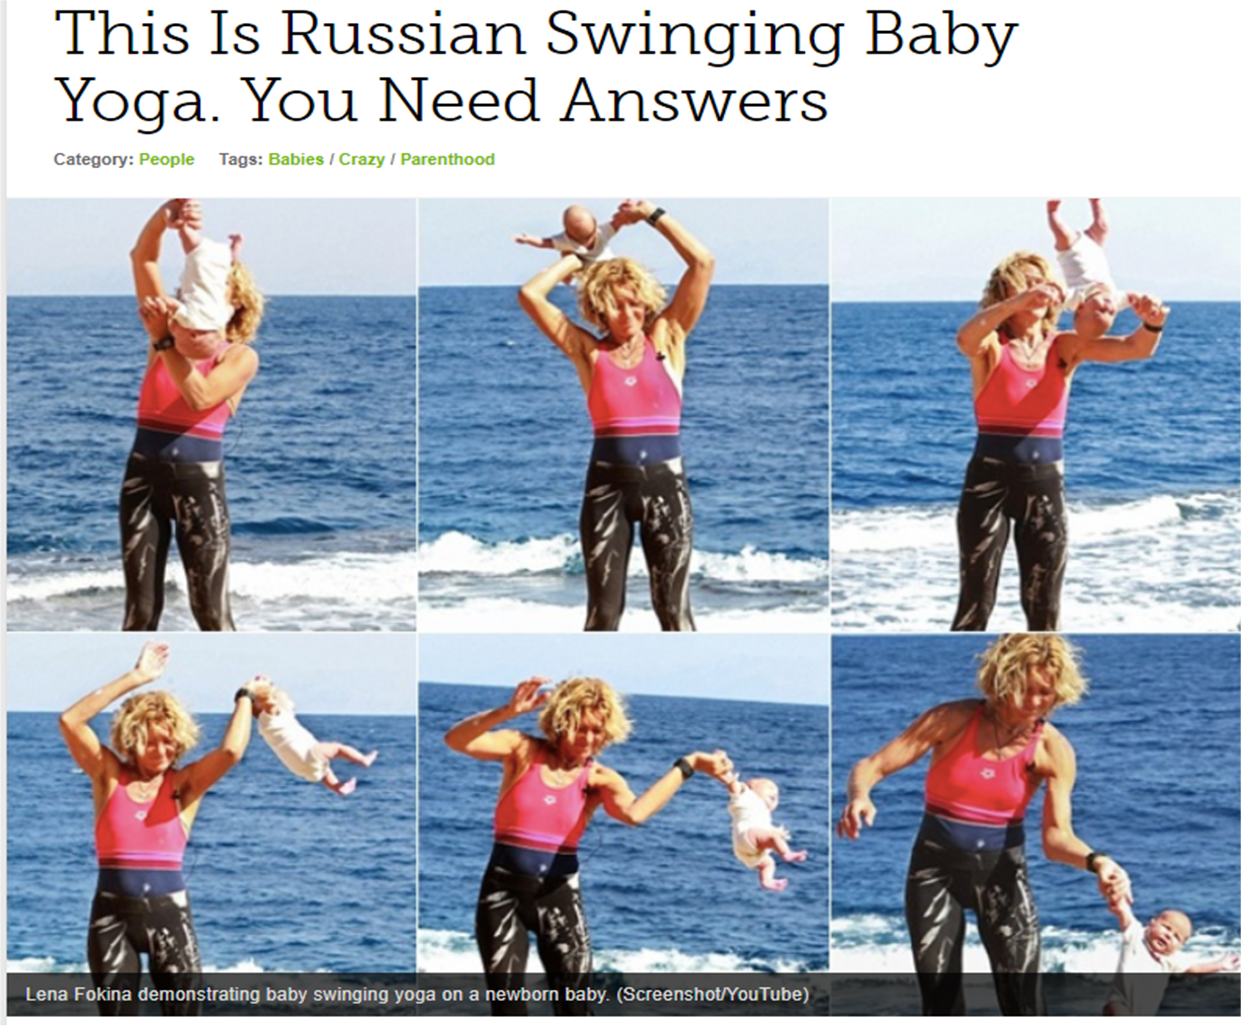 Рис. 1. Источник: http://www.visiontimes.com/2015/03/27/this-is-russian-swinging-baby-yoga-you-need-answers.html